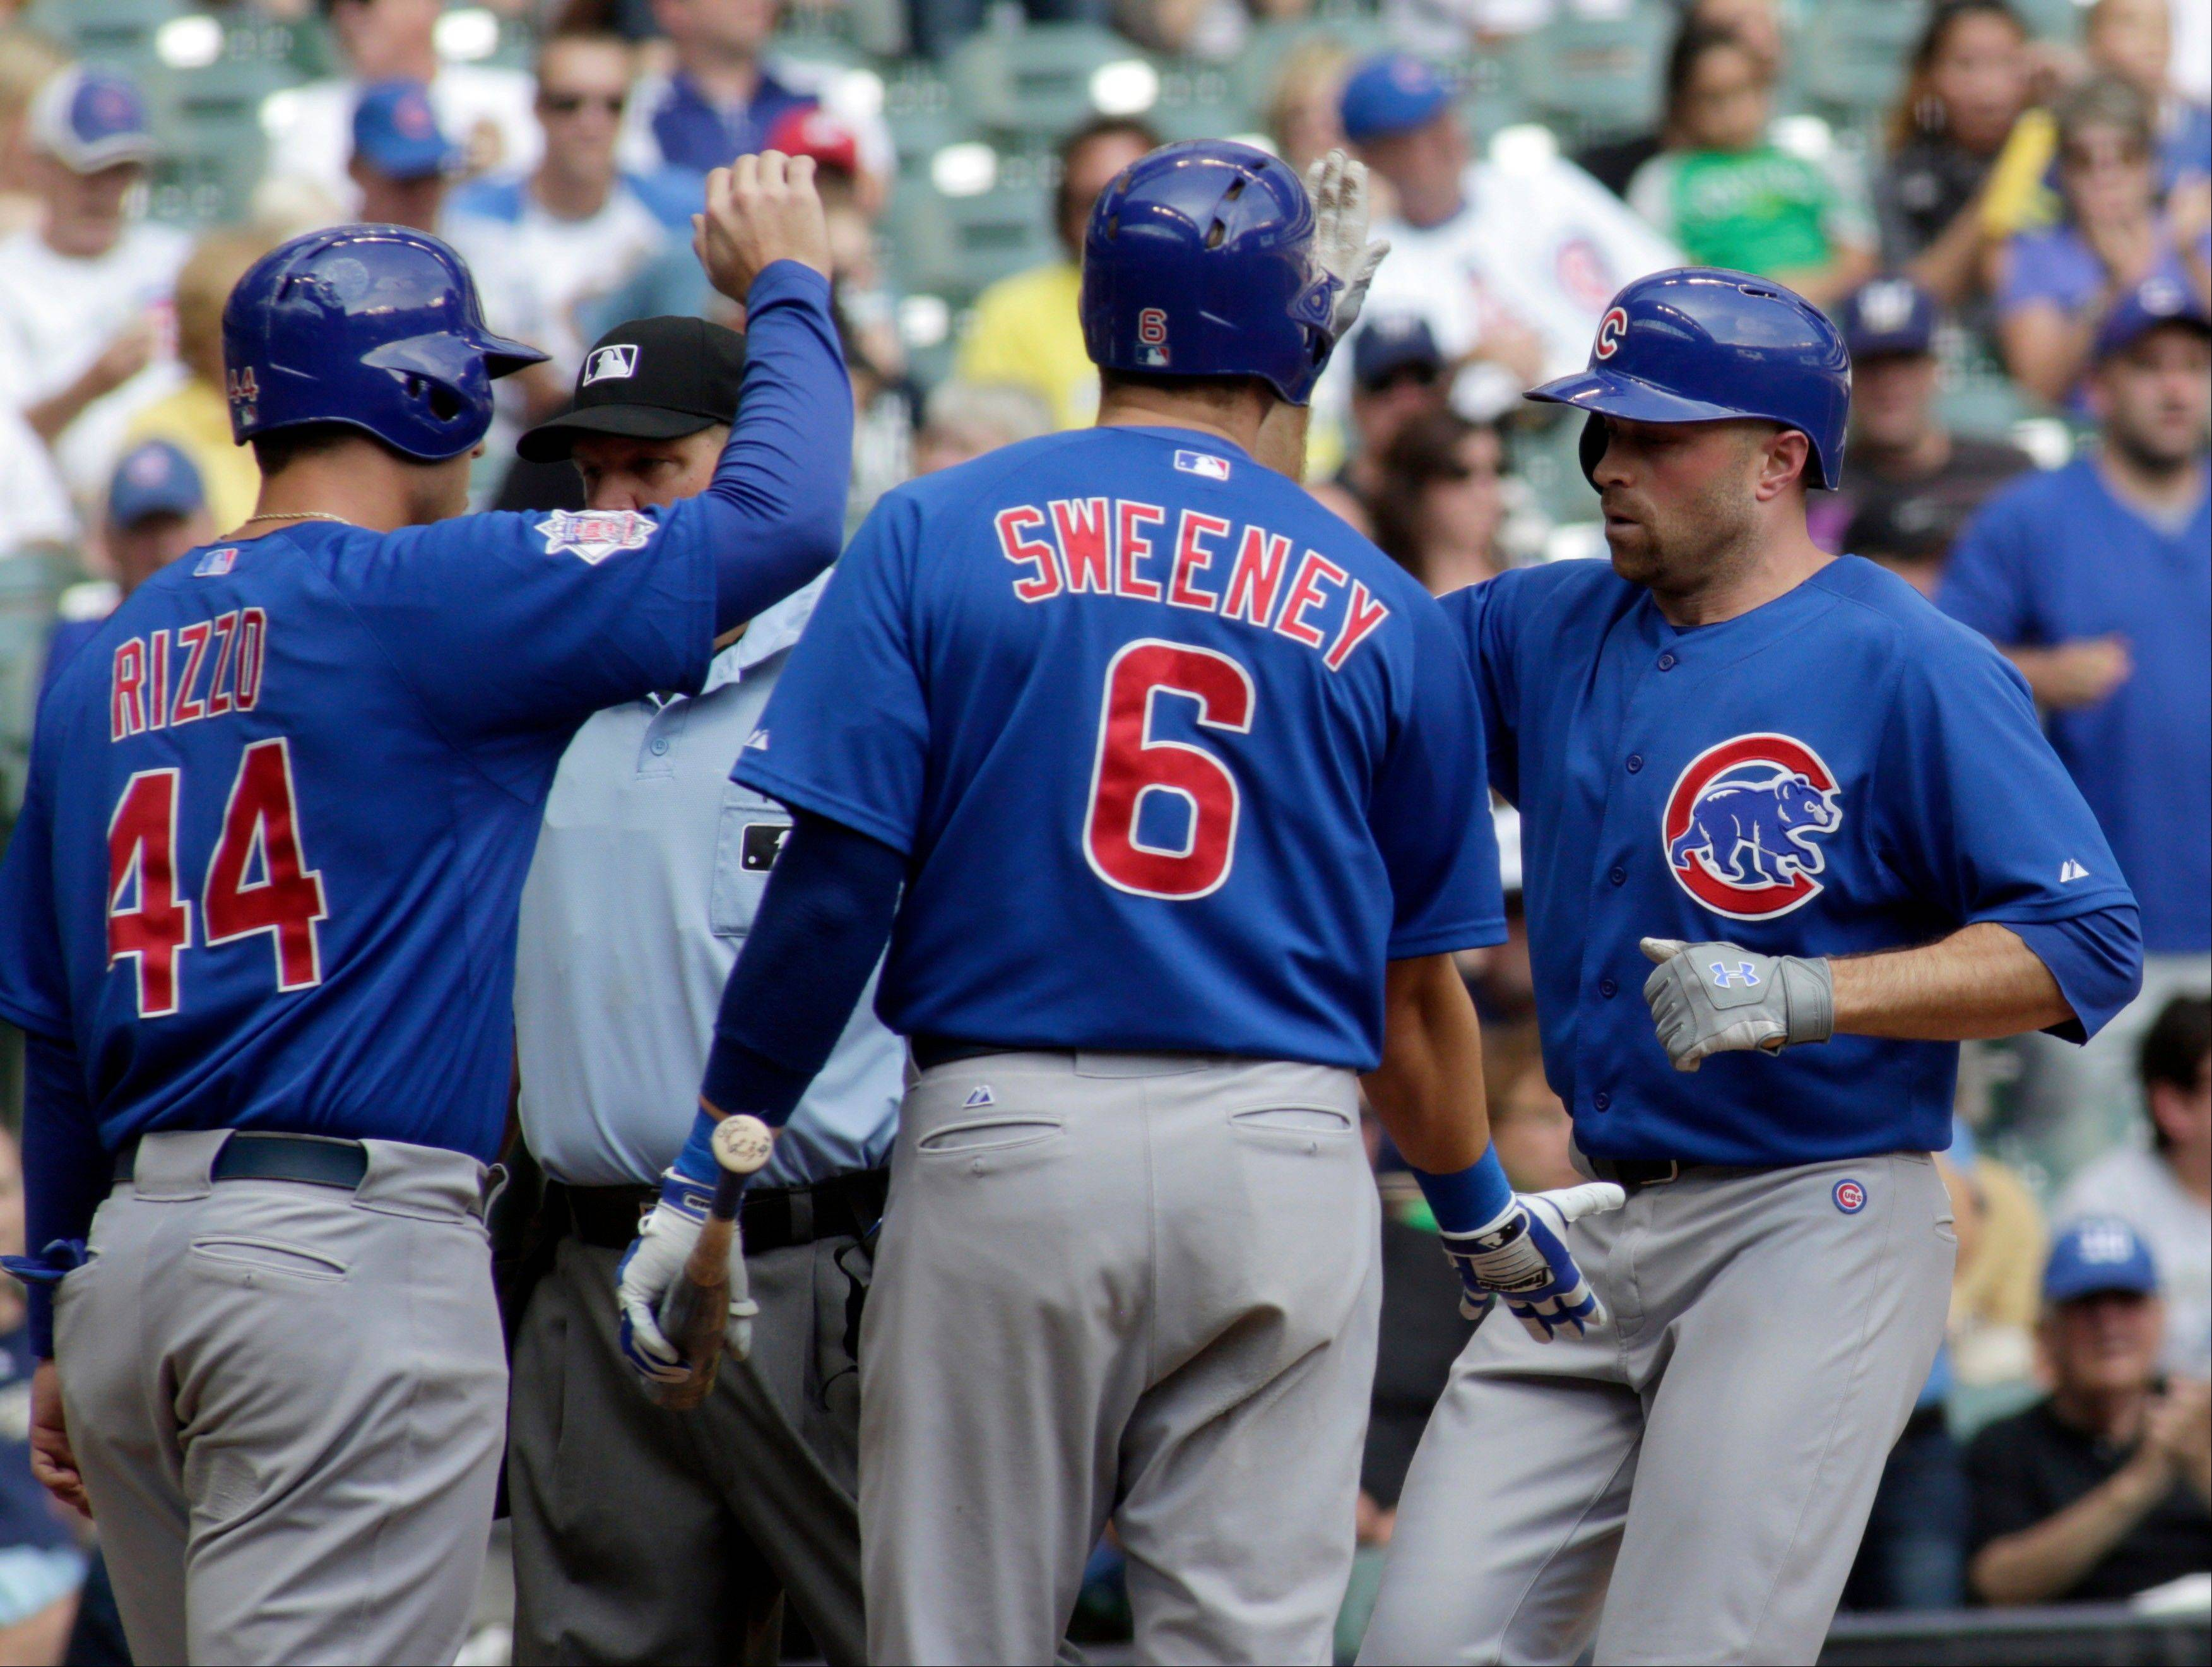 Associated Press The Cubs� Nate Schierholtz, right, is congratulated by teammates Anthony Rizzo, left, and Ryan Sweeney, center, after hitting a two-run home run against the Milwaukee Brewers during the third inning e Thursday in Milwaukee.